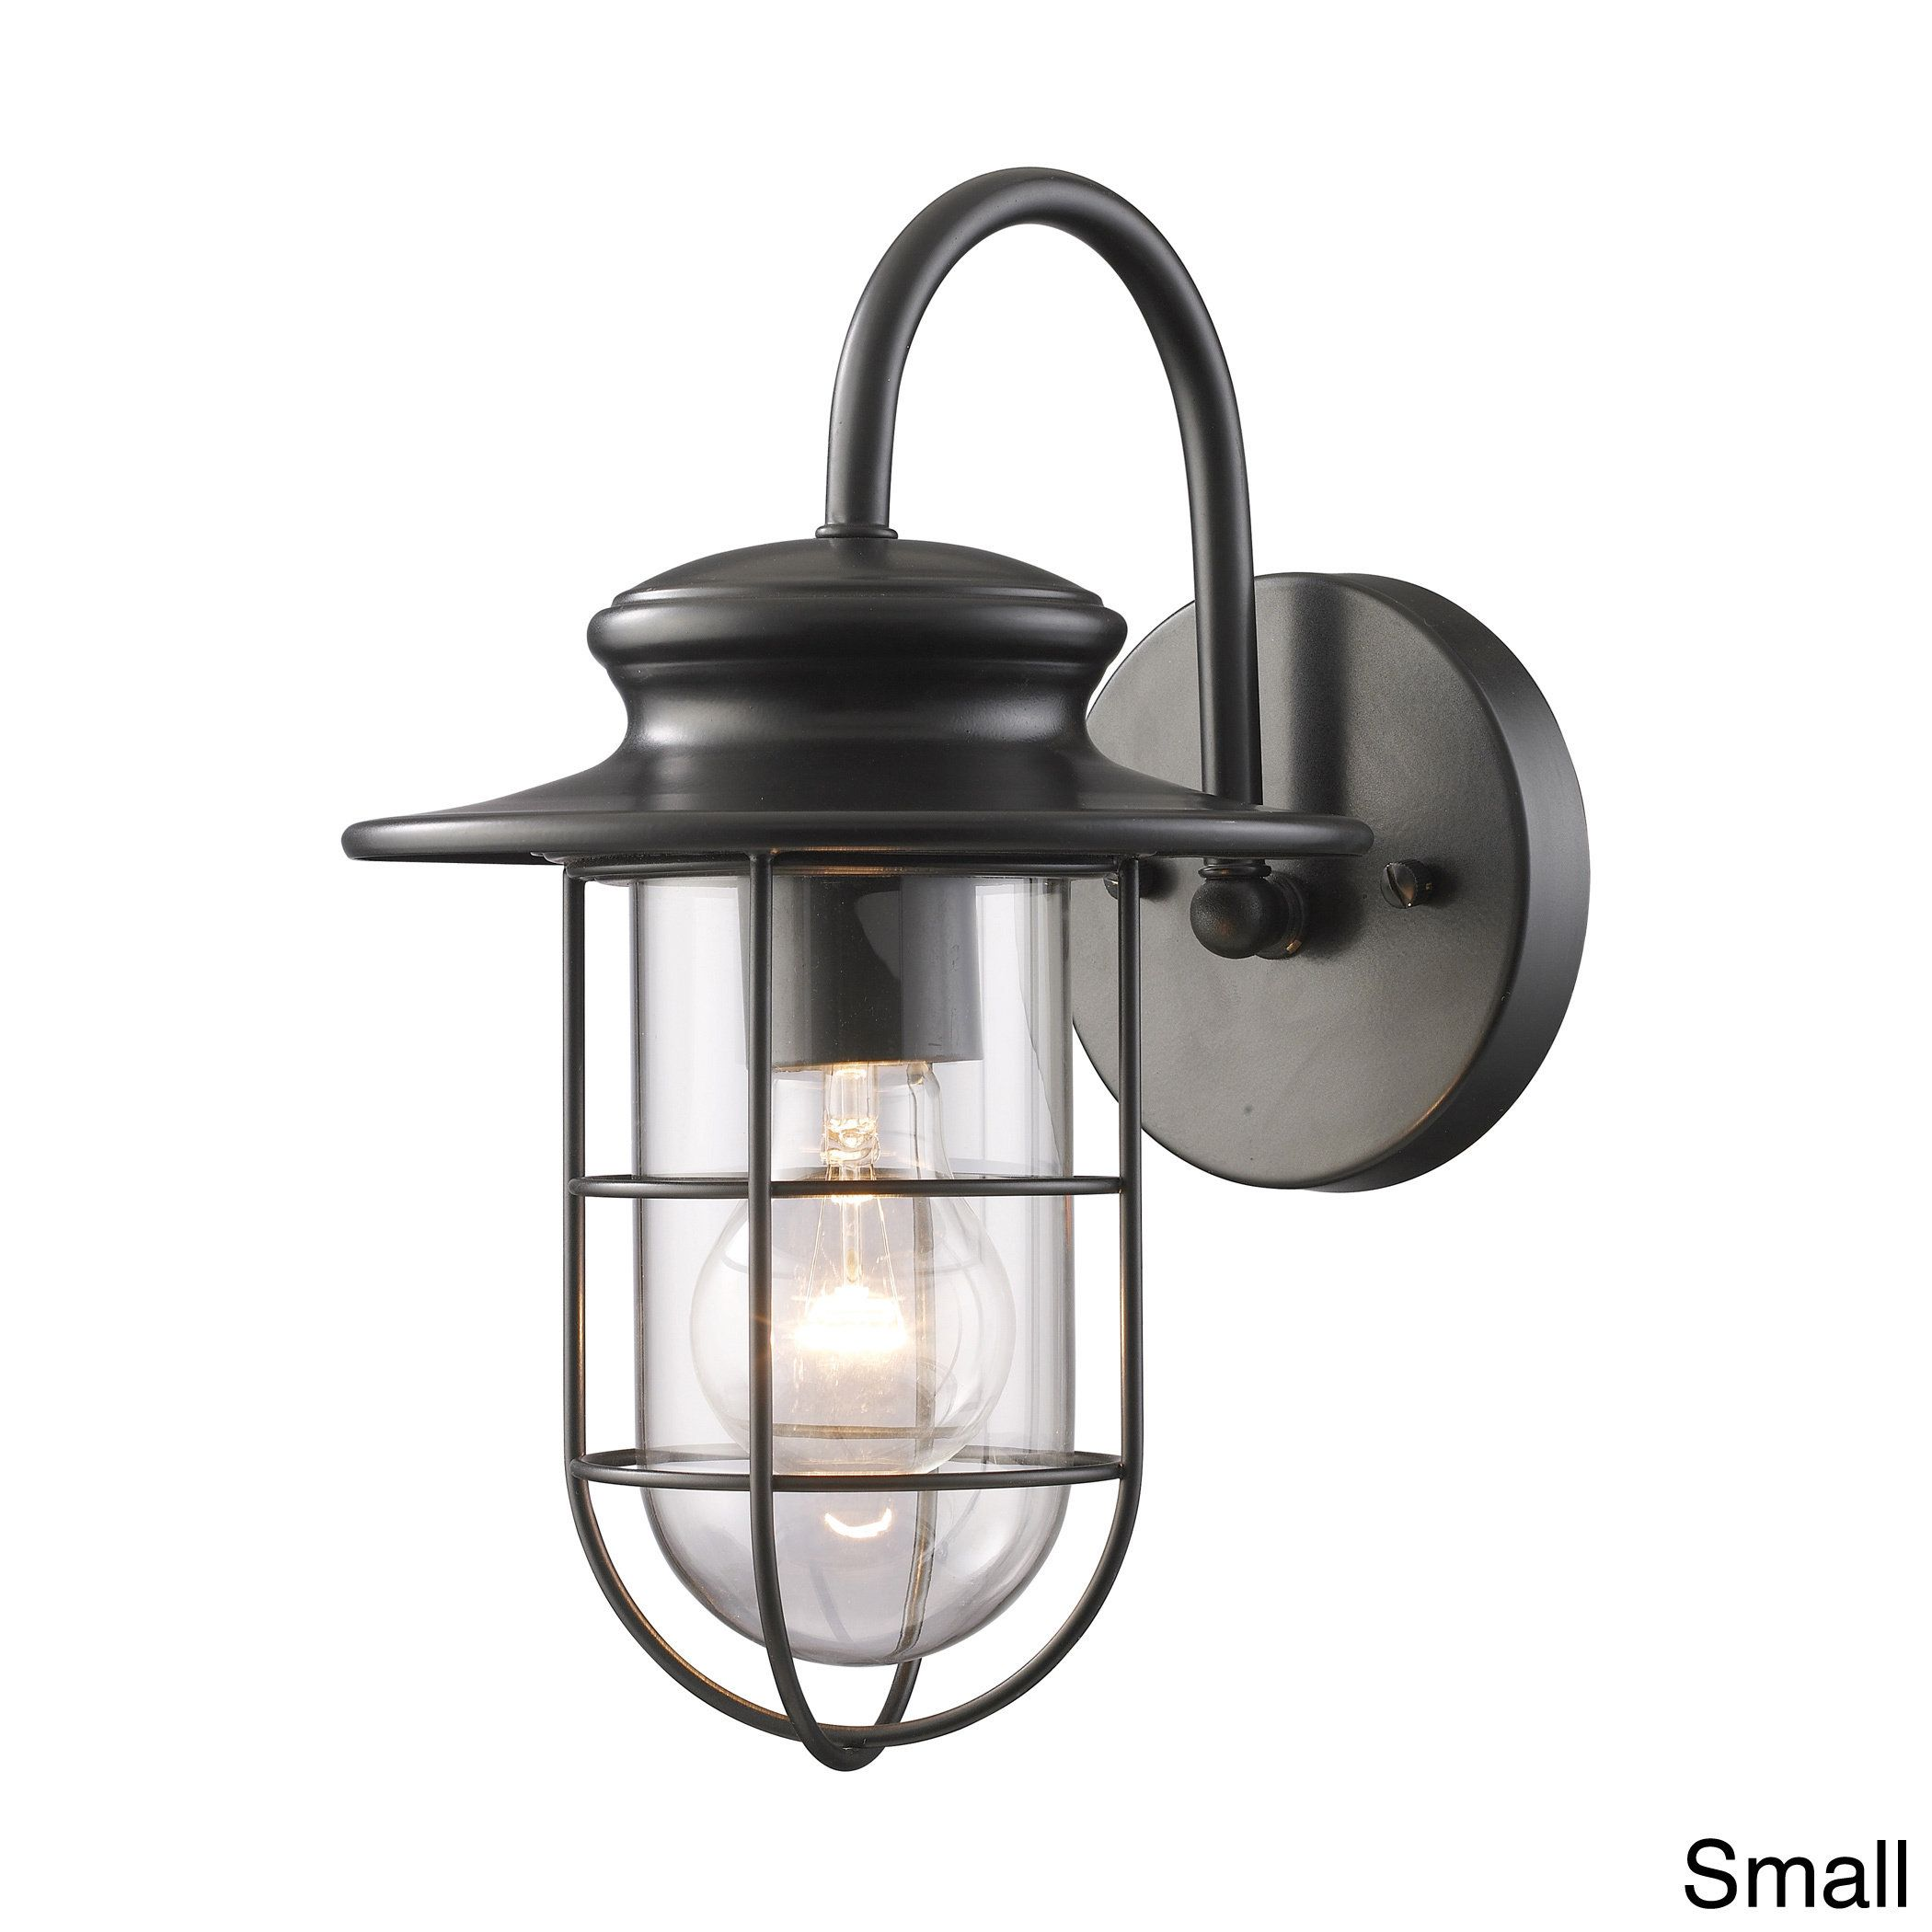 Buy black outdoor lighting wall sconces from overstock for buy black outdoor lighting wall sconces from overstock for everyday discount prices online aloadofball Image collections